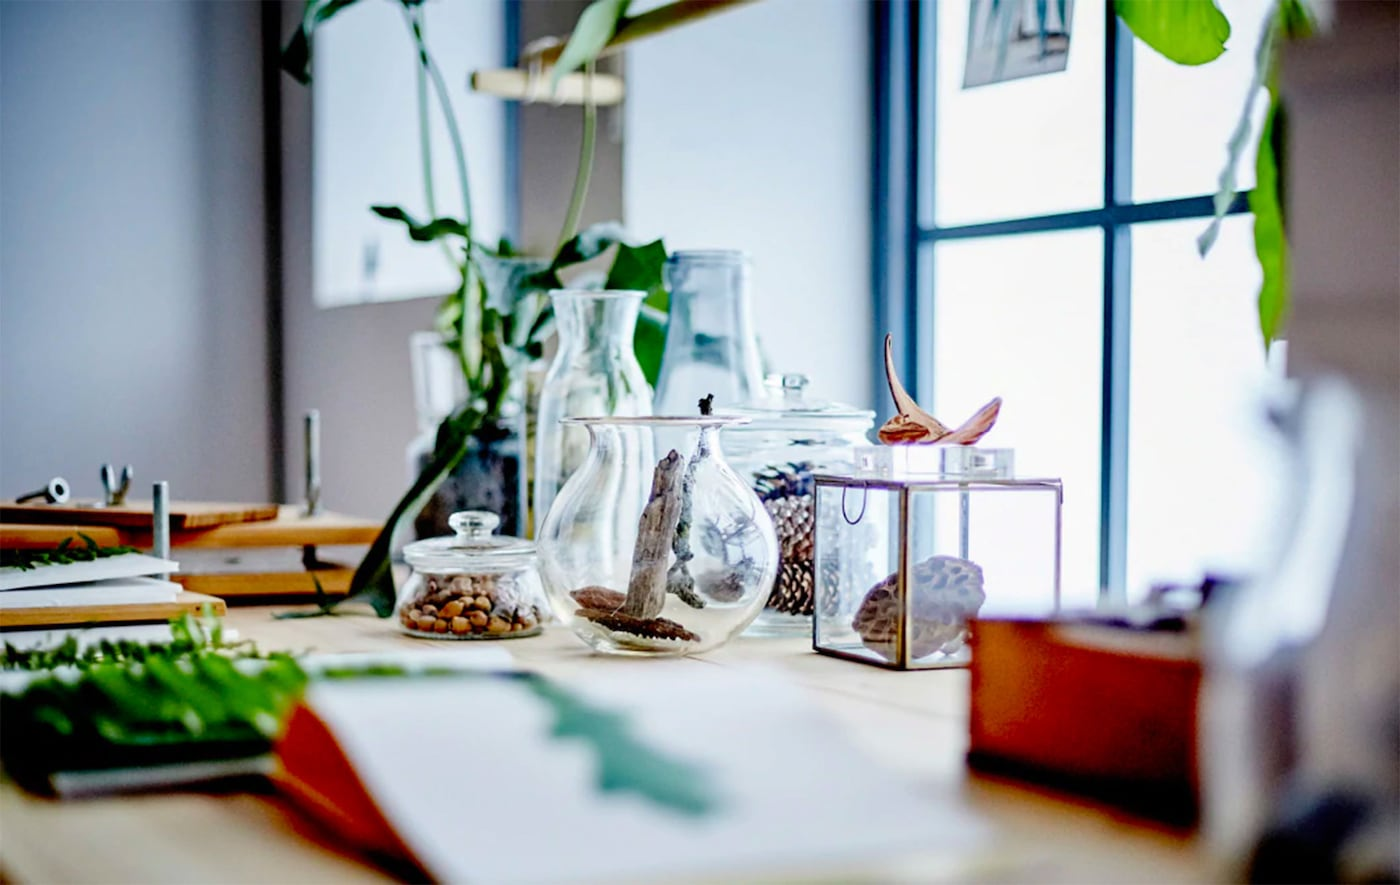 Desk in front of a brightly lit window with glass containers on it filled with plants and pinecones